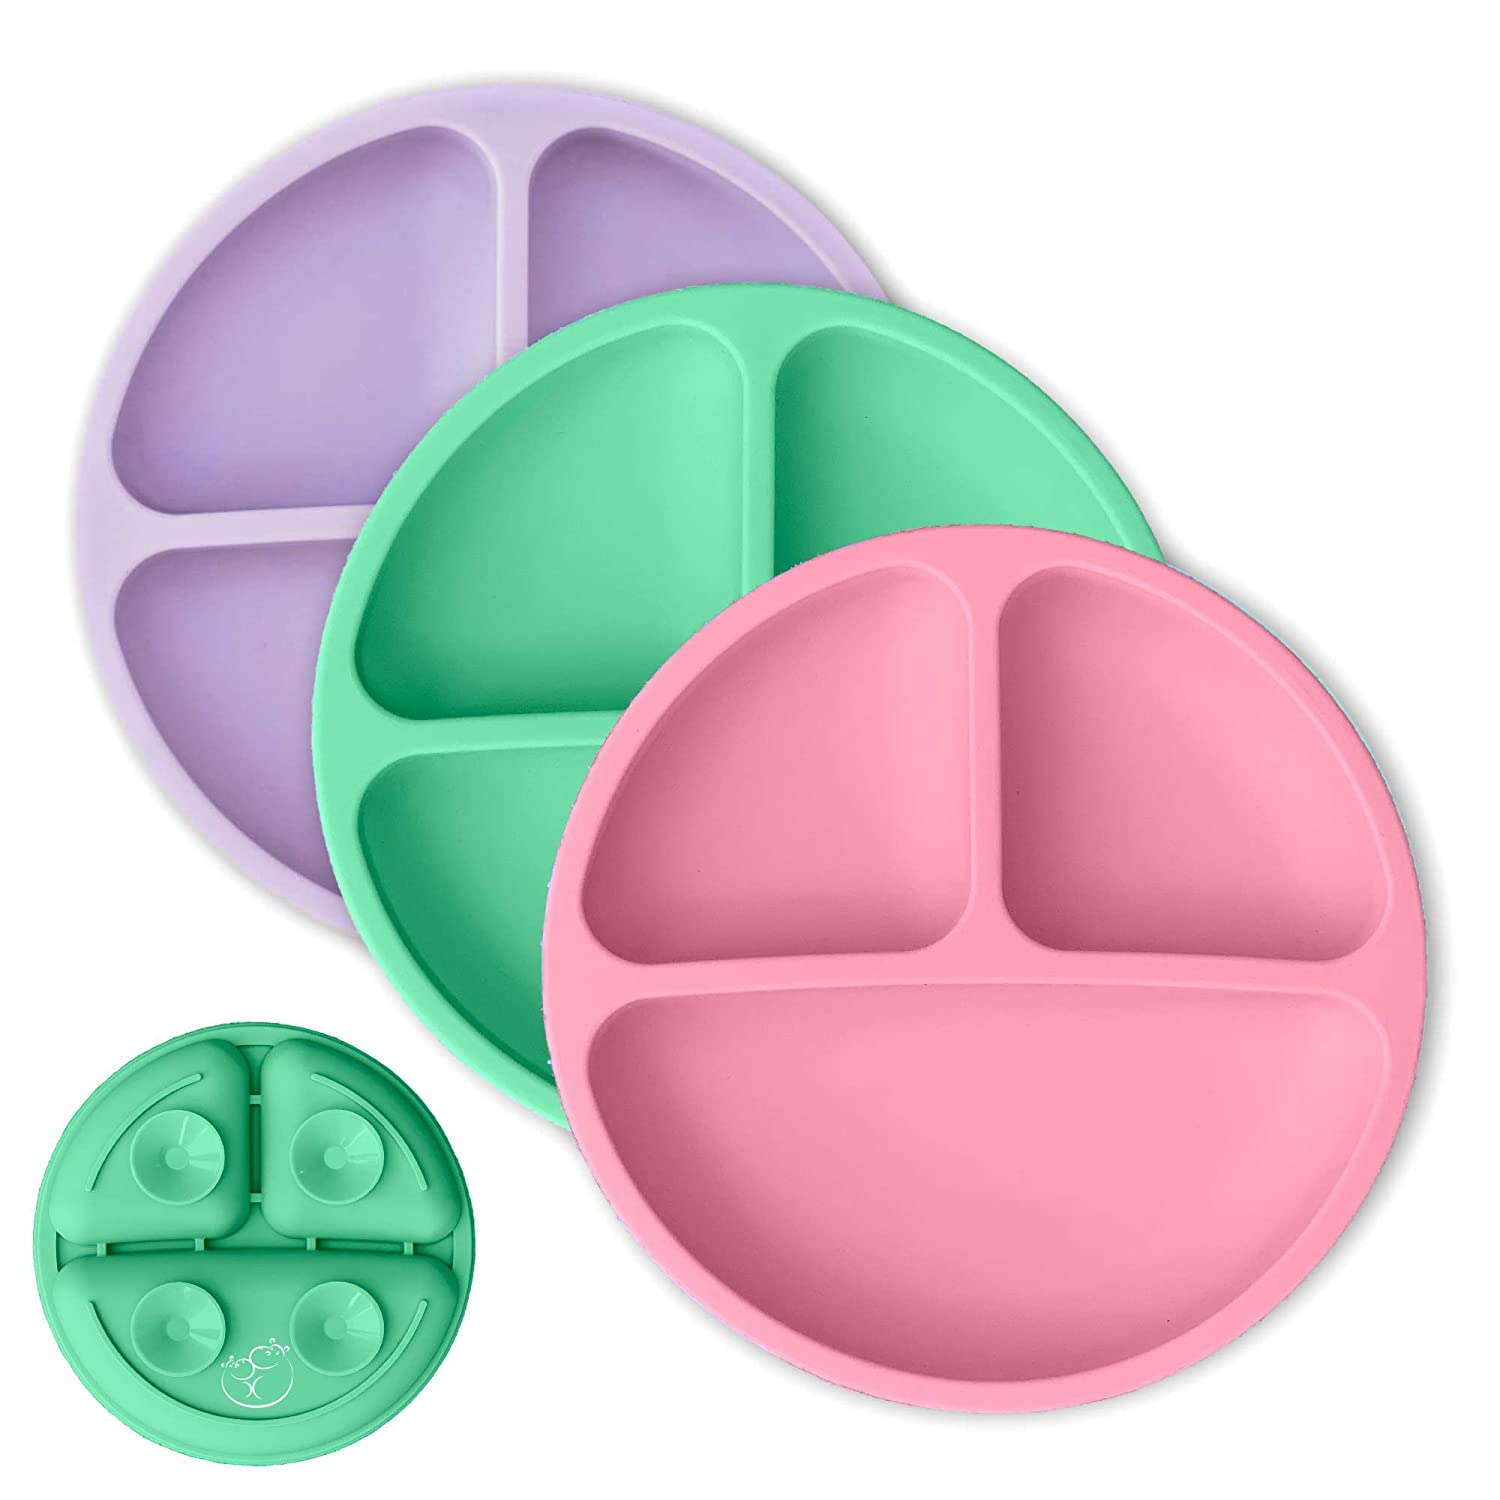 Hippypotamus Toddler Plates with Suction - Baby Plates - 100% Silicone Divided Plate - BPA Free - Microwave Safe Dishes - Set of 3 - Suction Pink, Lavender, Mint Green